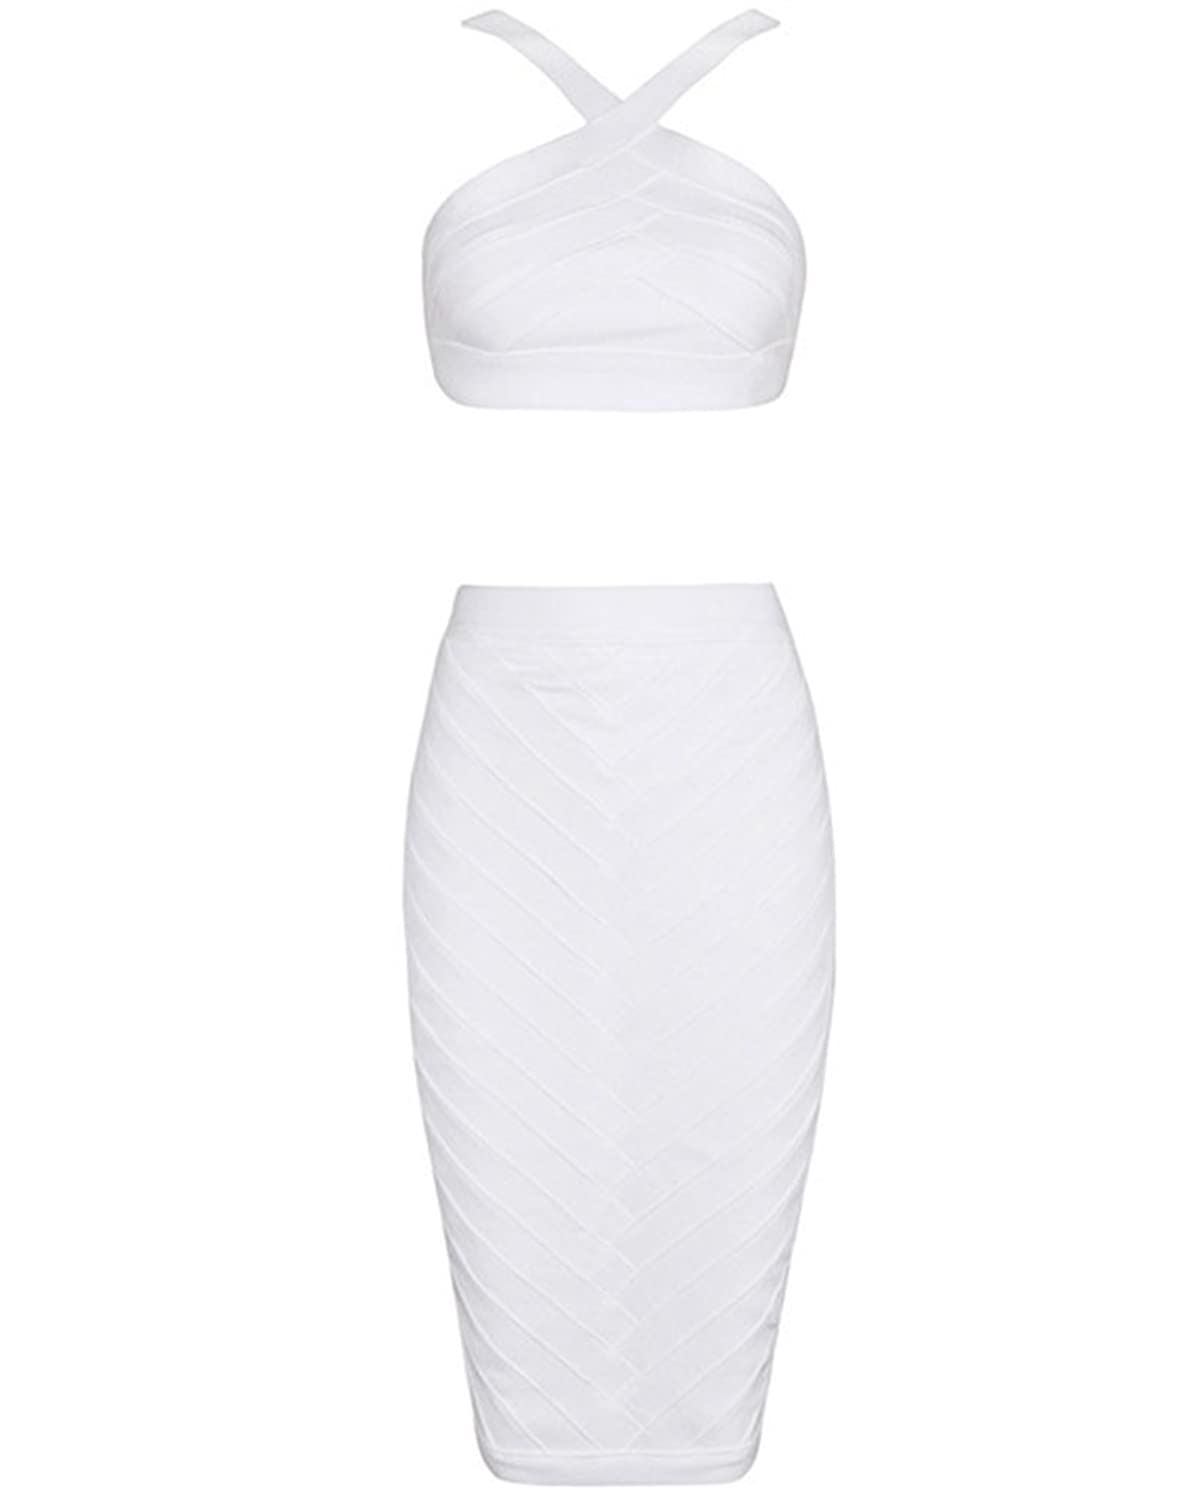 f682f43c1 80%OFF Whoinshop Womens Crop Top Midi Skirt Outfit Two Piece Bodycon  Bandage Dress